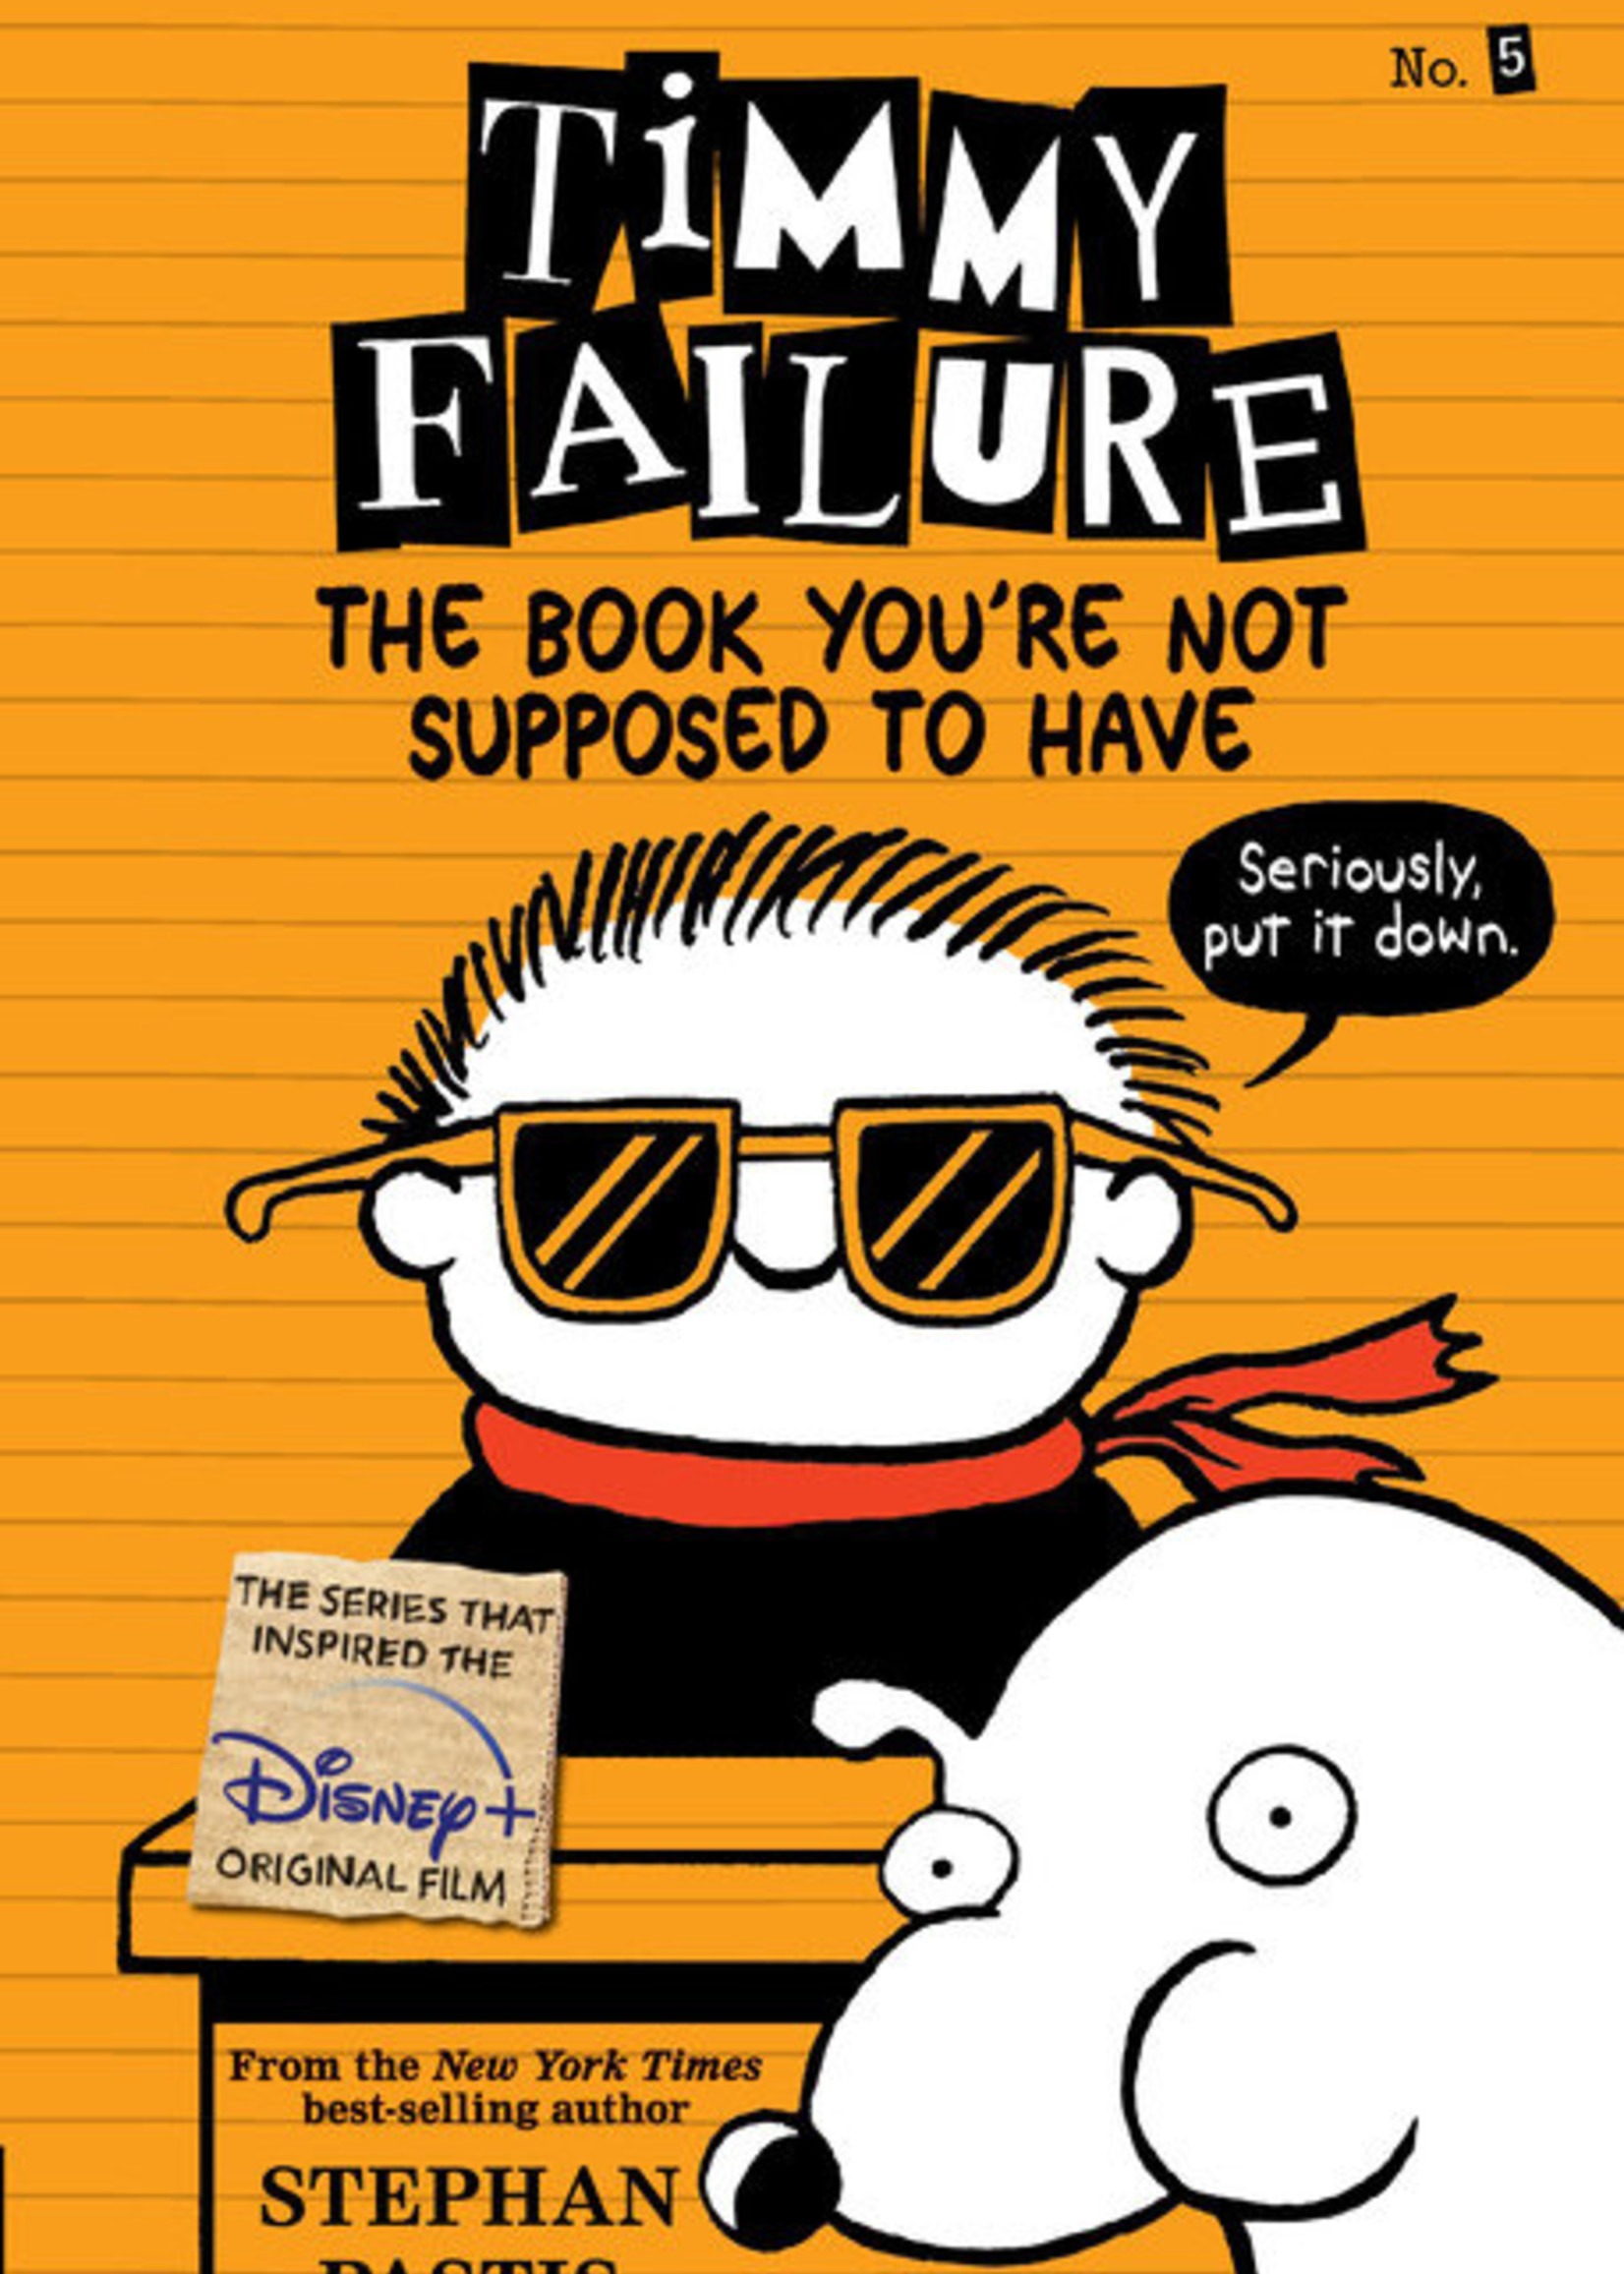 Timmy Failure #05, The Book You're Not Supposed to Have Illutrated Novel - Paperback